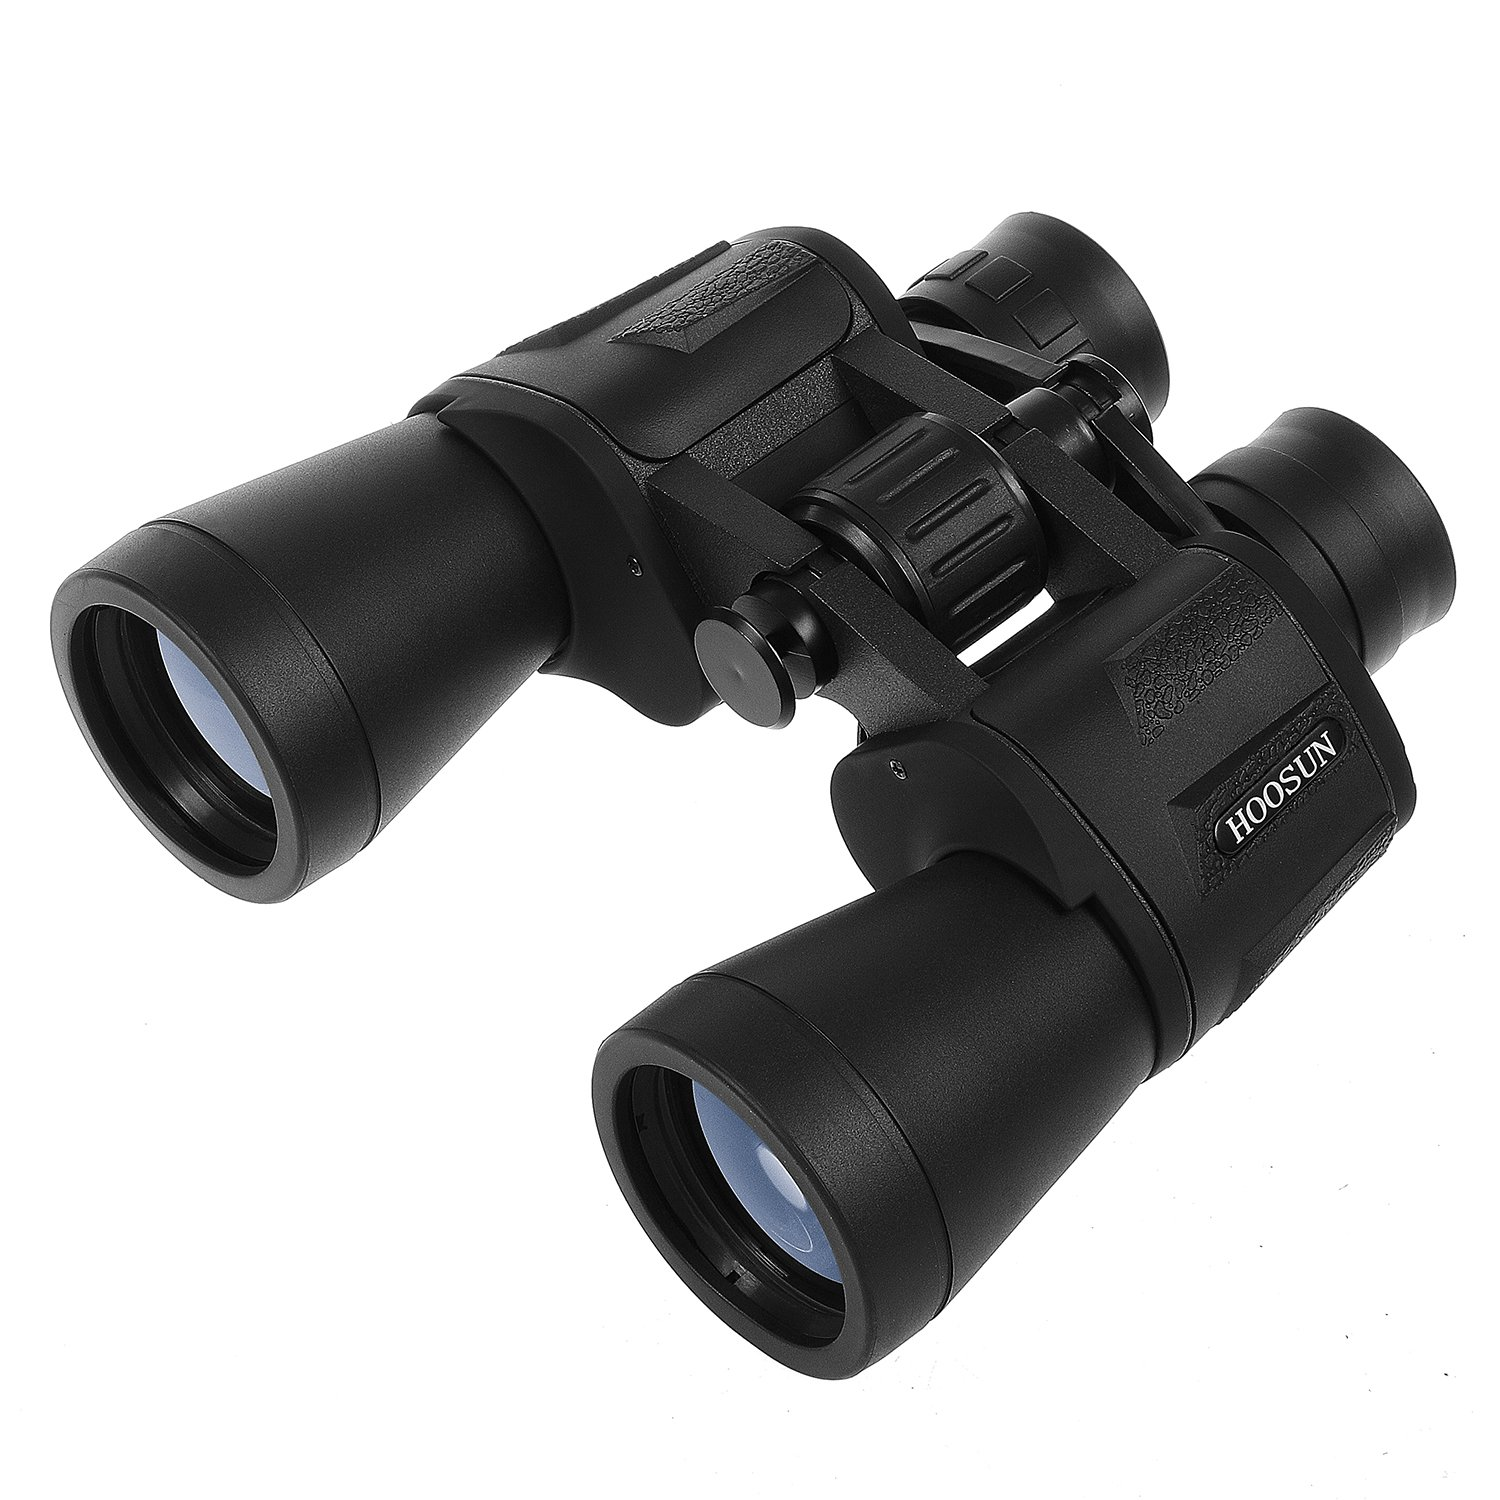 Binoculars for Adults, Binoculars 10×50, Binoculars for Birdwatching Traveling Hunting Sports Games Outdoor Activities Stargazing